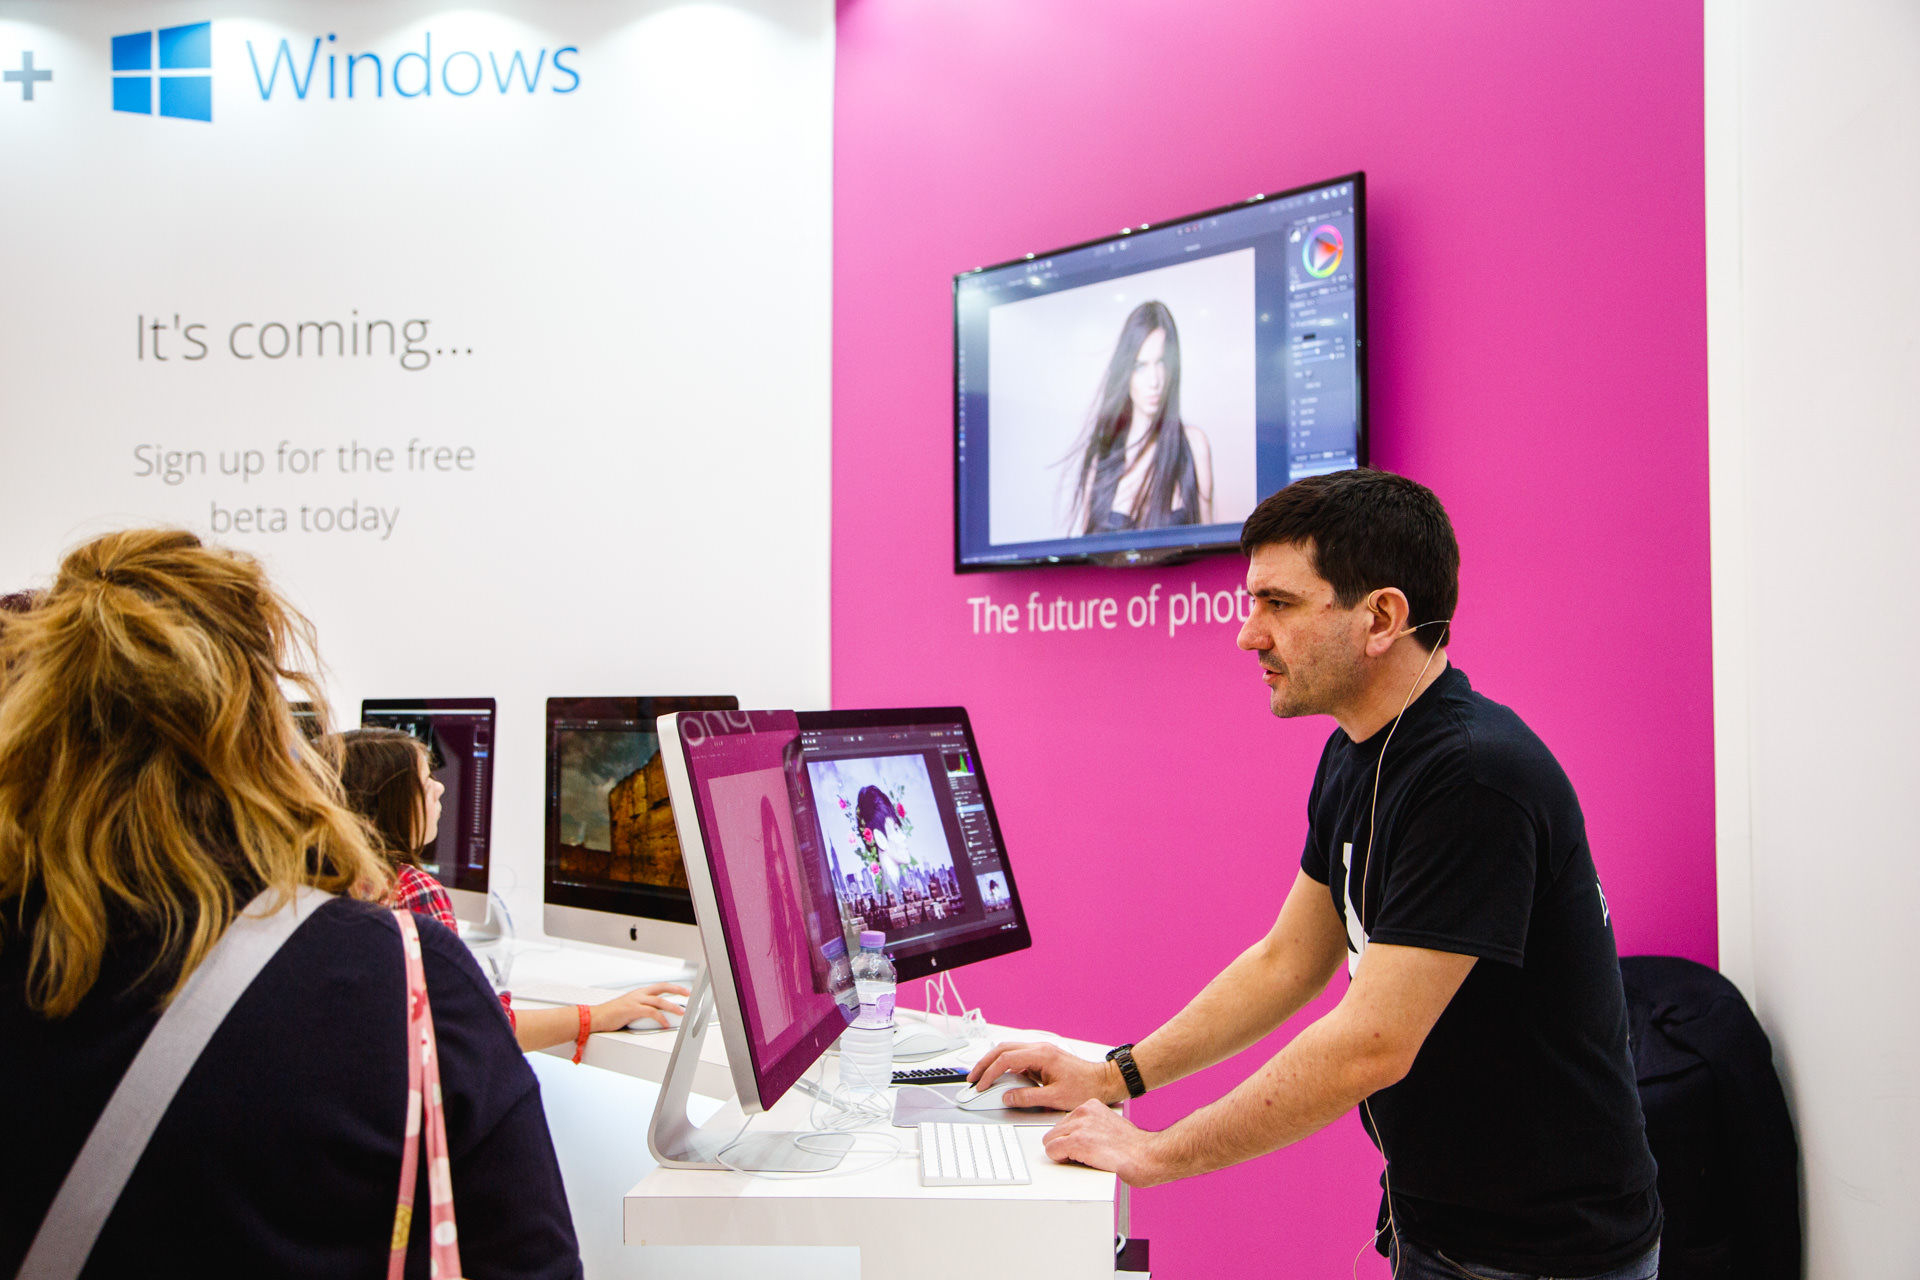 Affinity  impressed me at their stand with a well-presented demo of a few features of their slick Photoshop-rivalling software. Affinity won the best Mac app of 2015, and with a Windows version on the way I think they are set to do well on the PC platform.